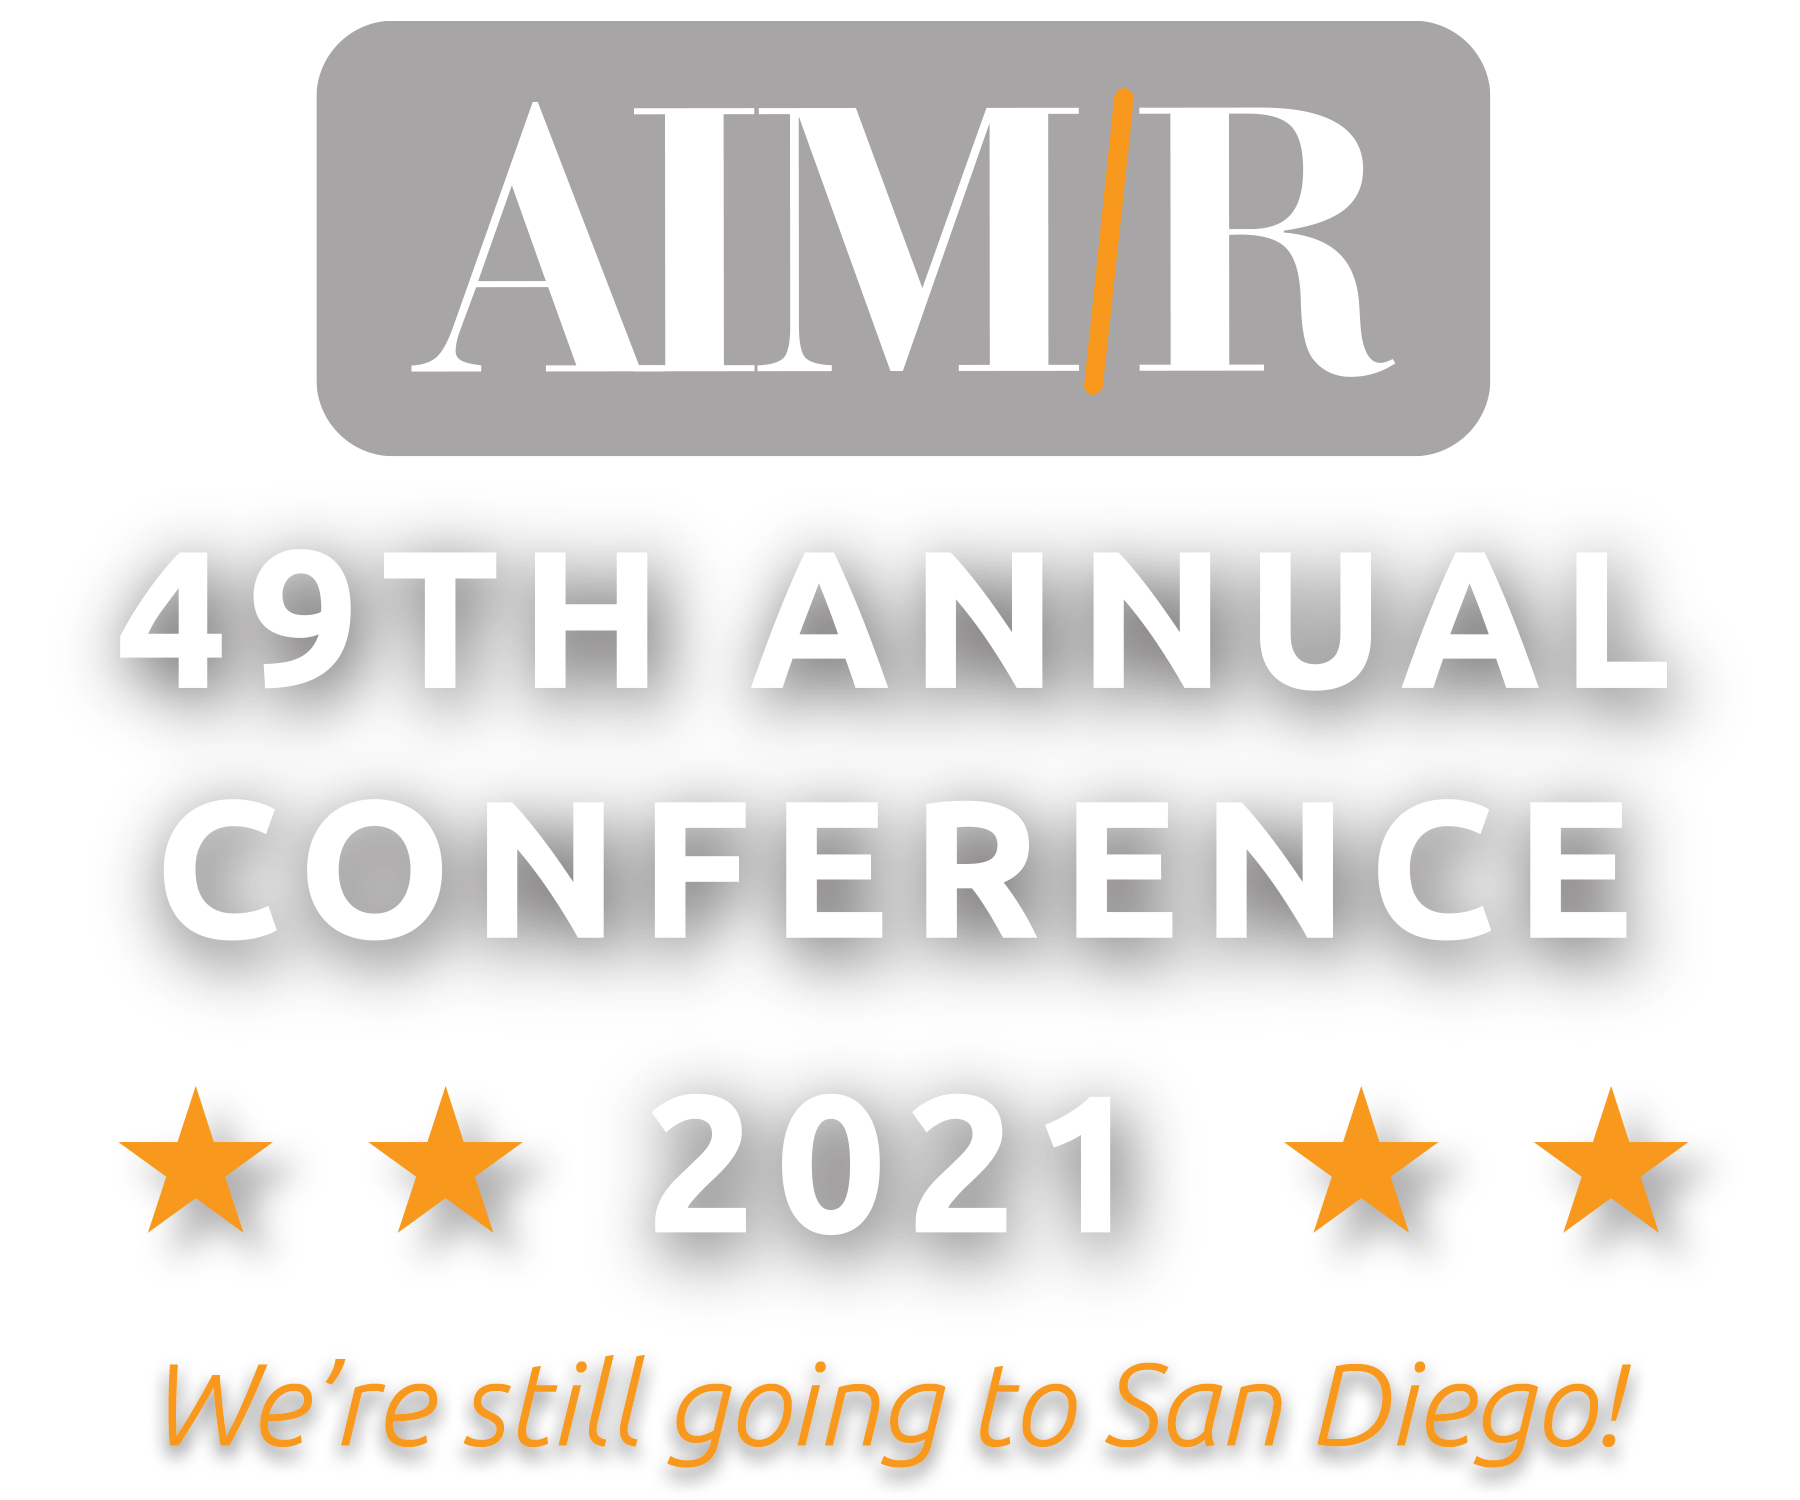 AIMR 49th Annual Conference